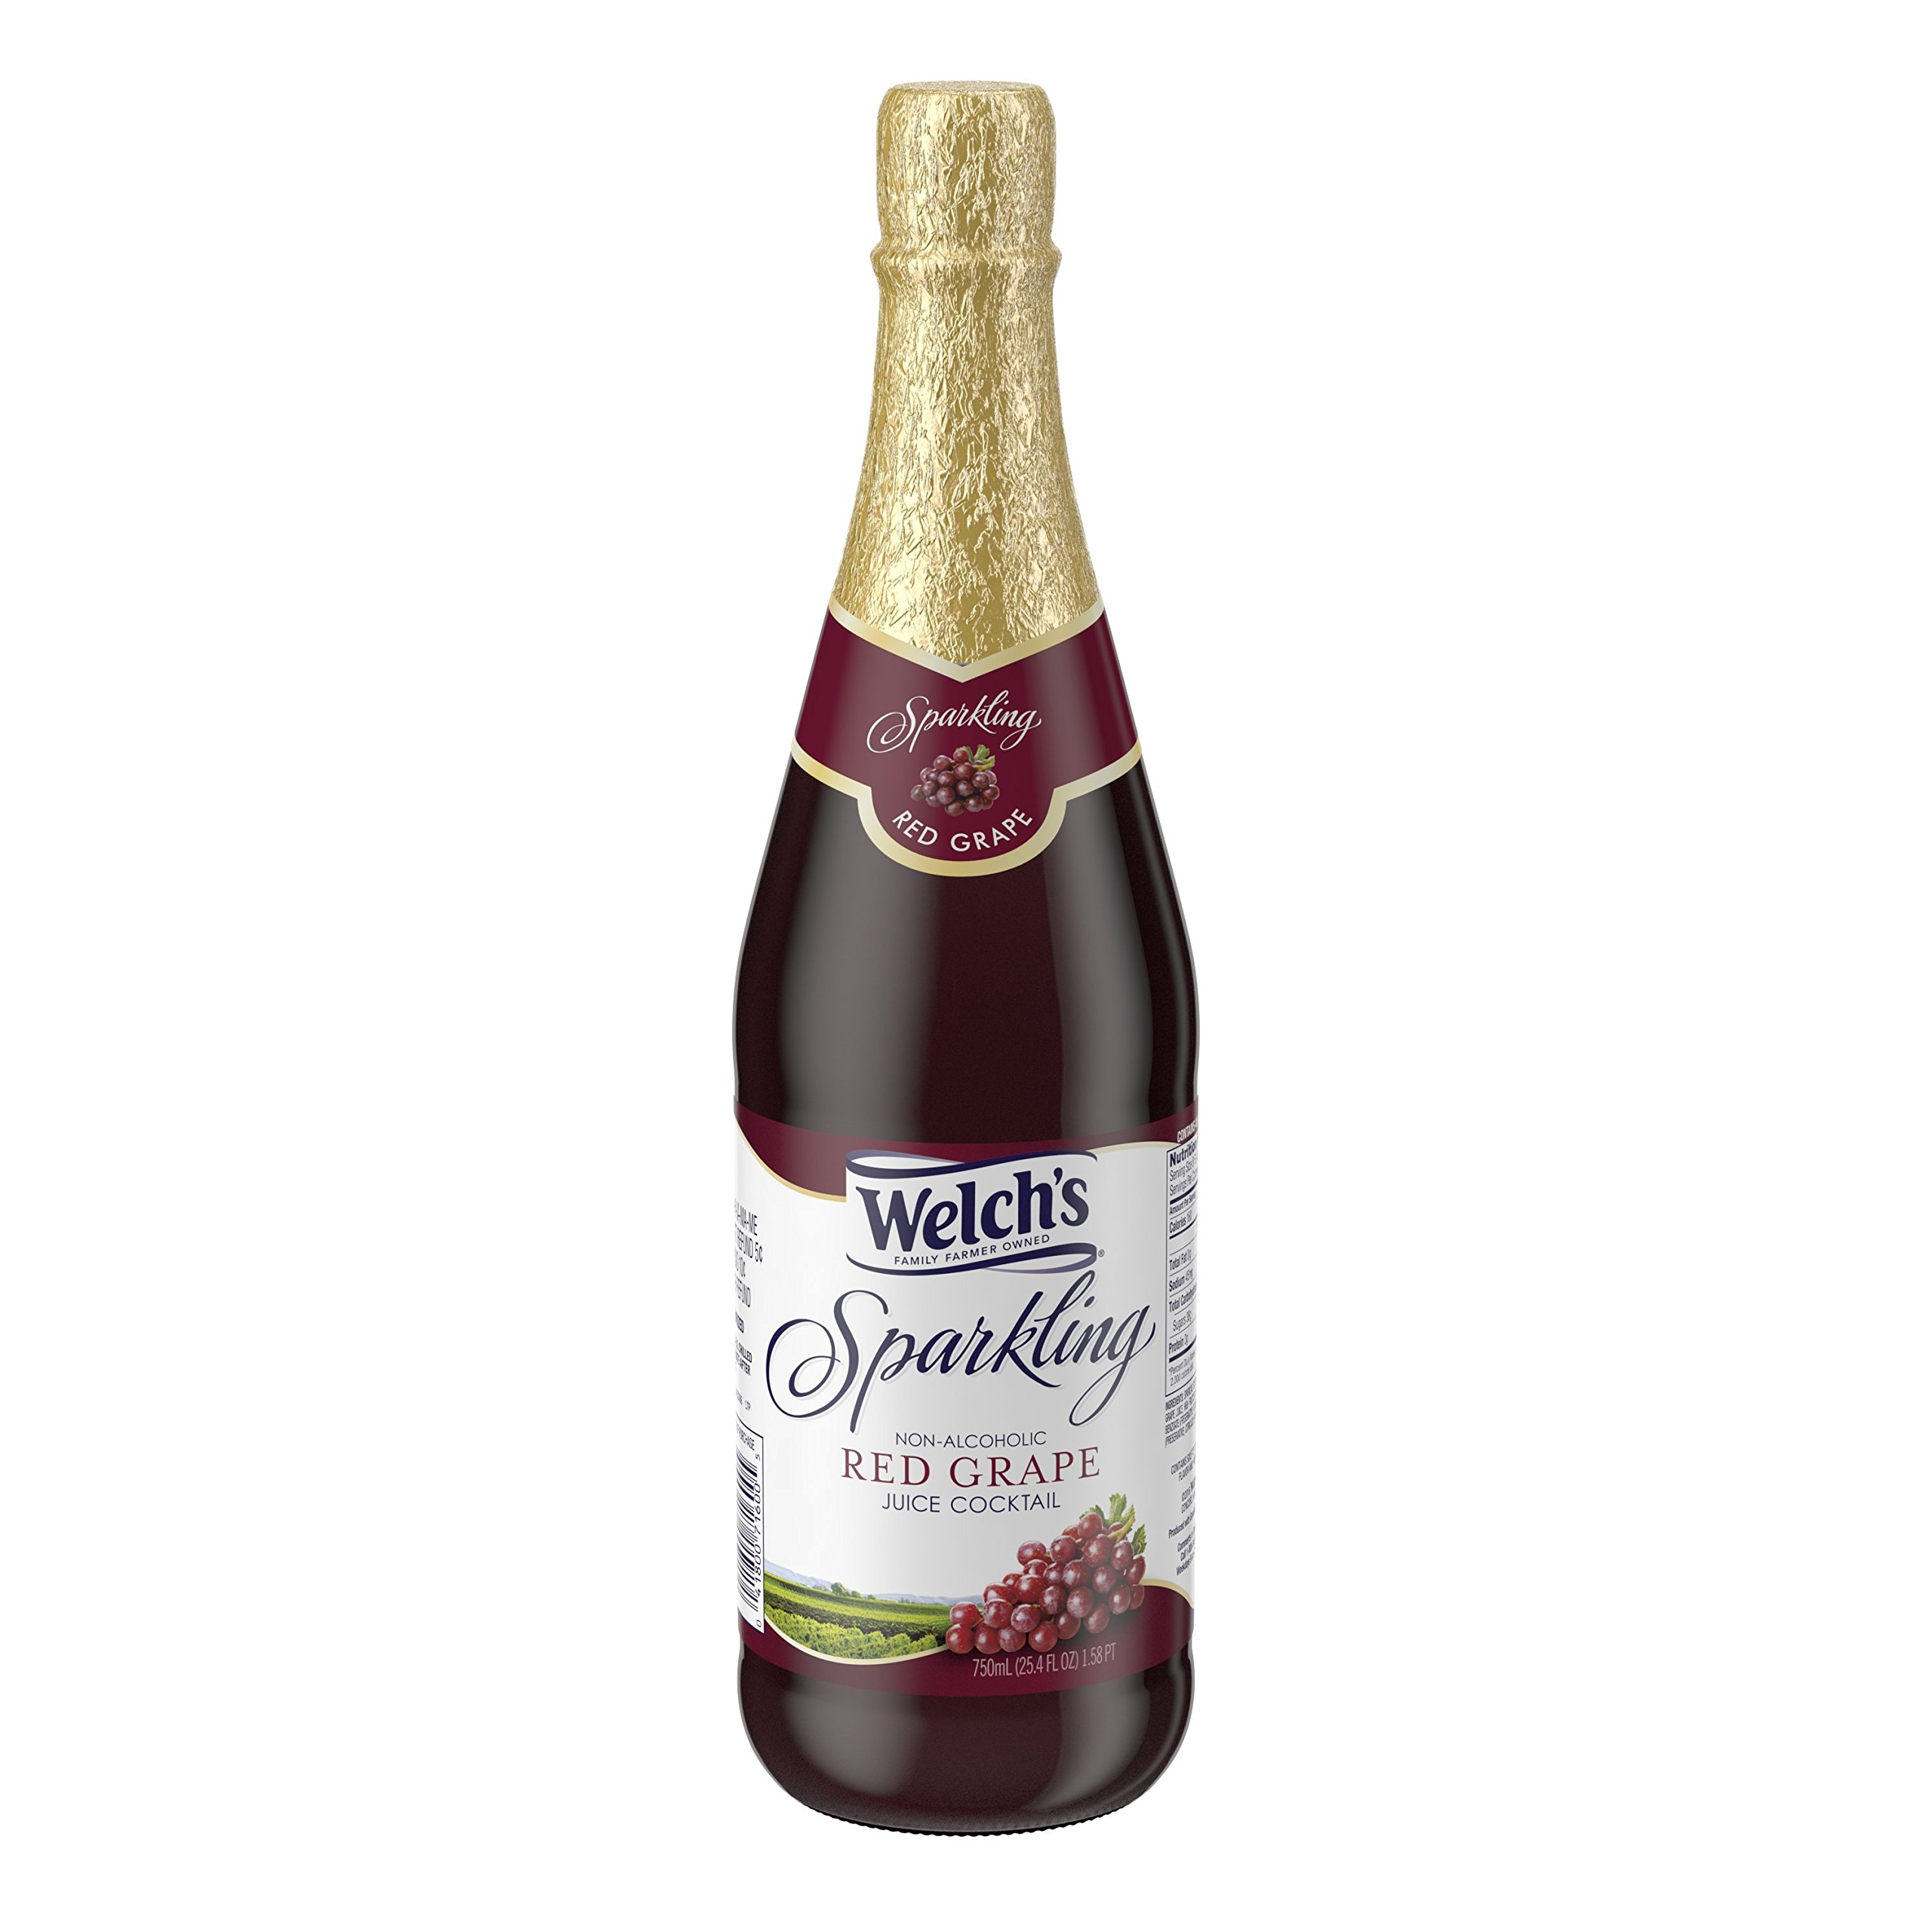 Welch's Sparkling Juice Cocktail, Non-Alcoholic, Red Grape, 25.4 Ounce (Pack of 12) by Welch's